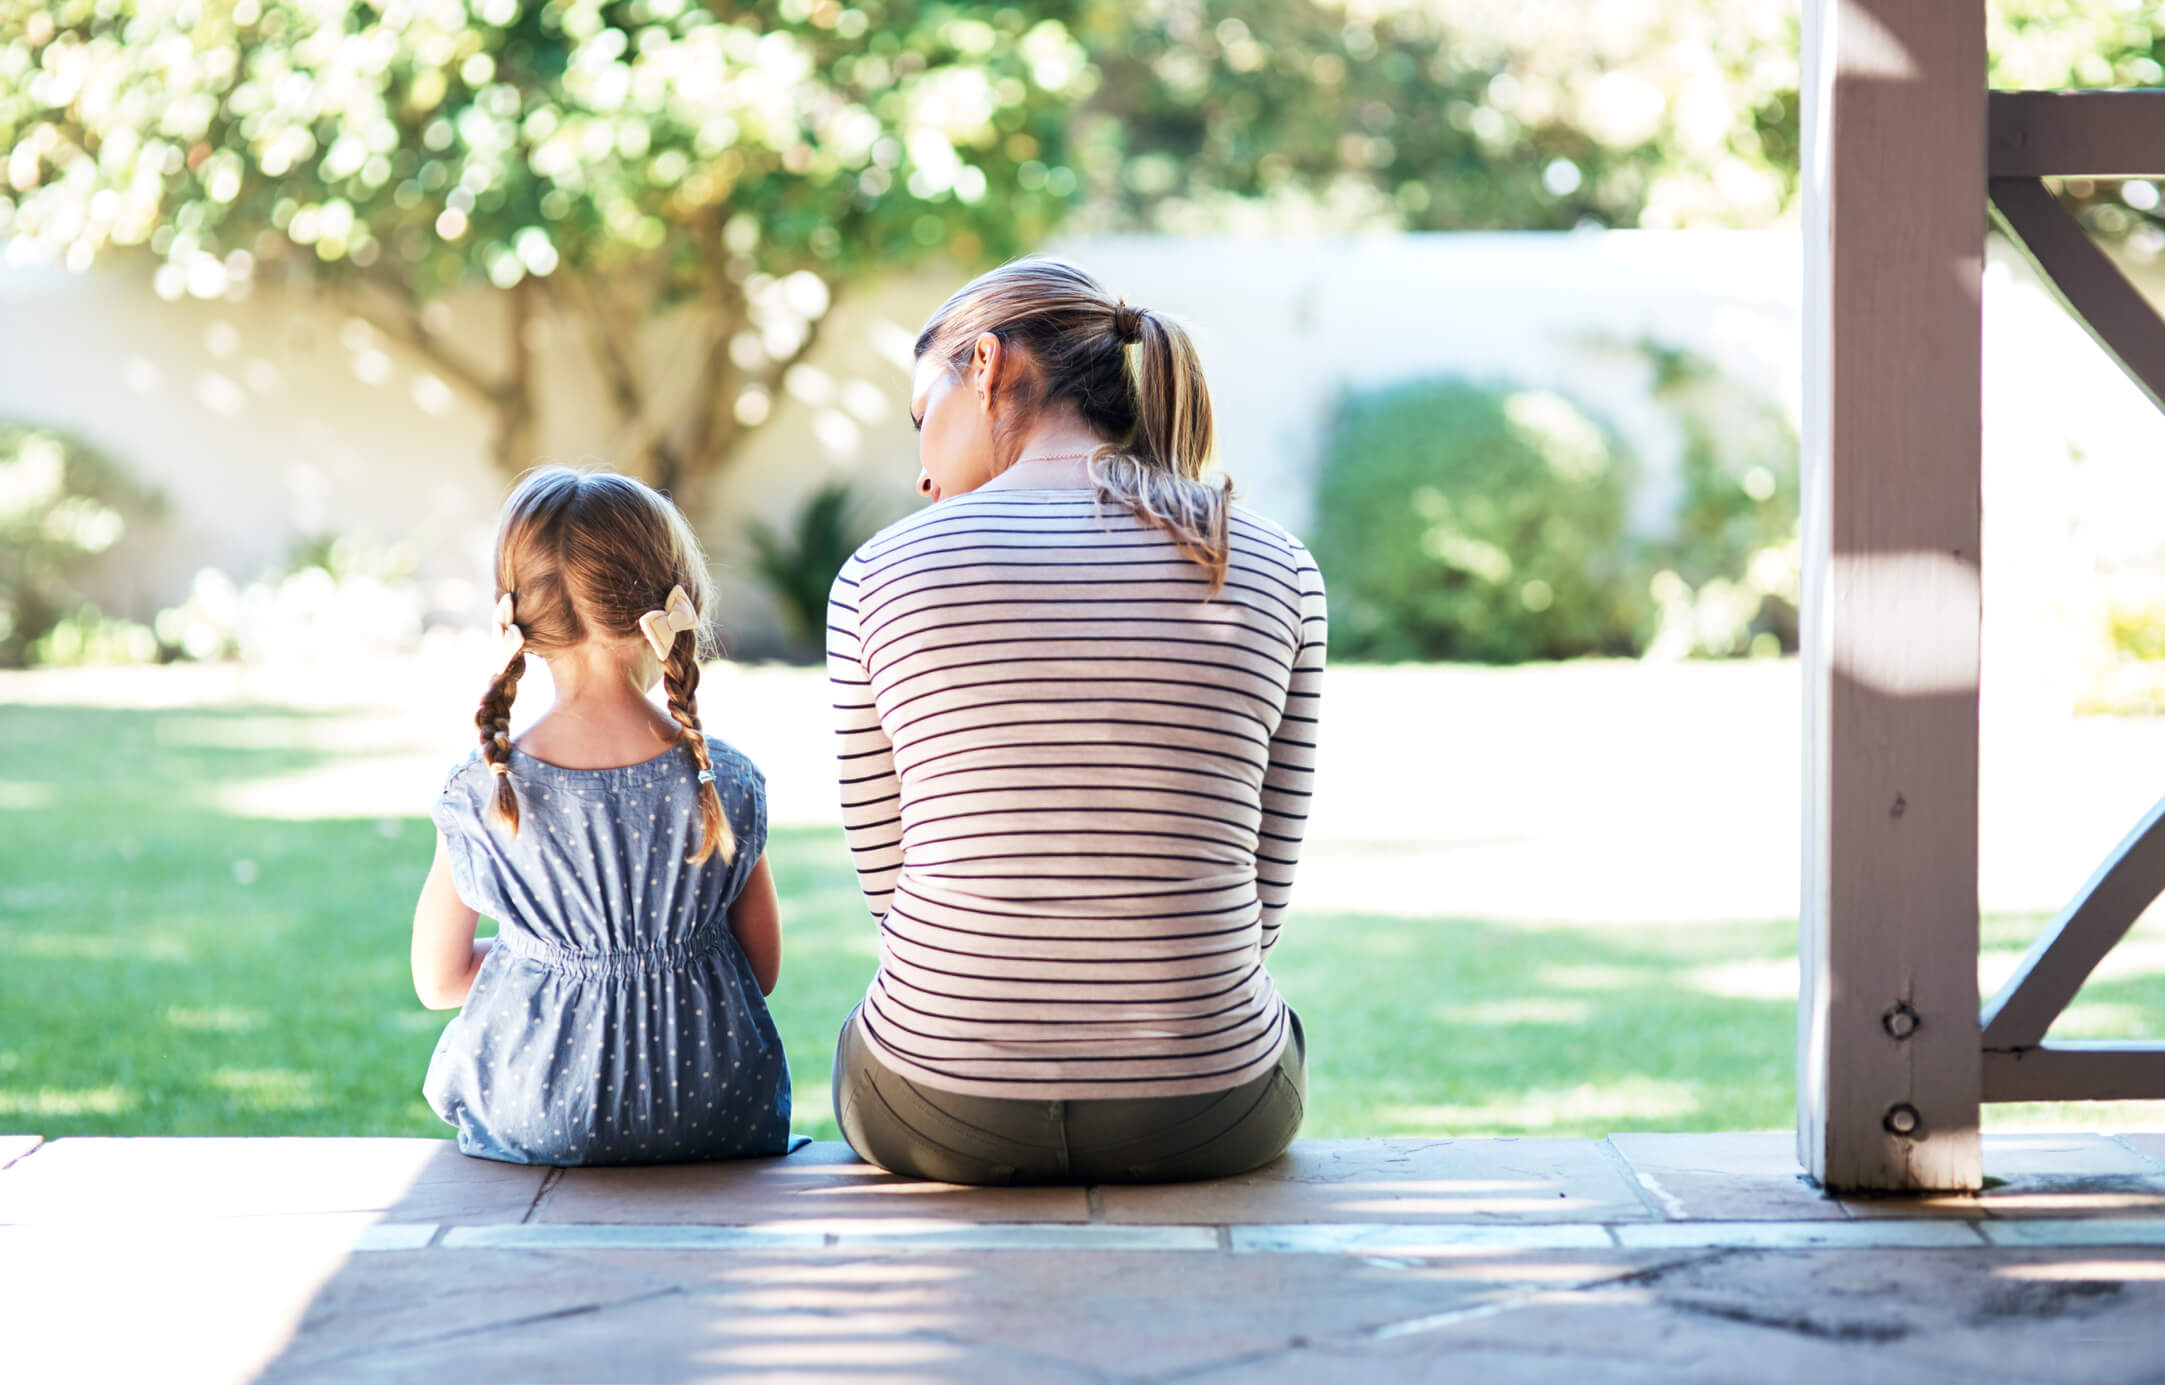 Caring for Abused or Neglected Children